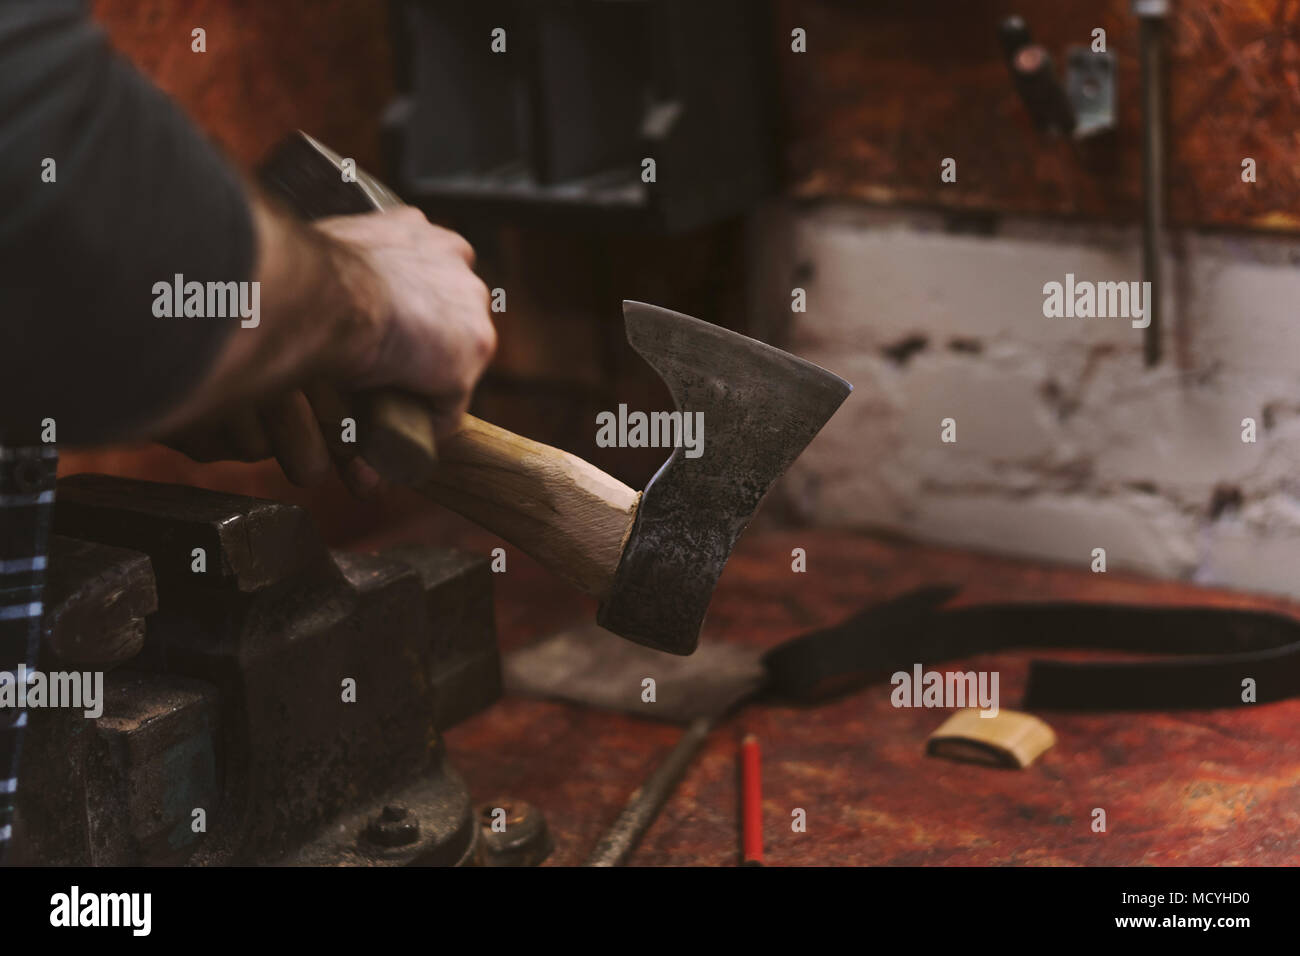 Man works in carpentry workshop. He straightens ax blade on wooden handle with hammer. Men at work. Hand work. - Stock Image